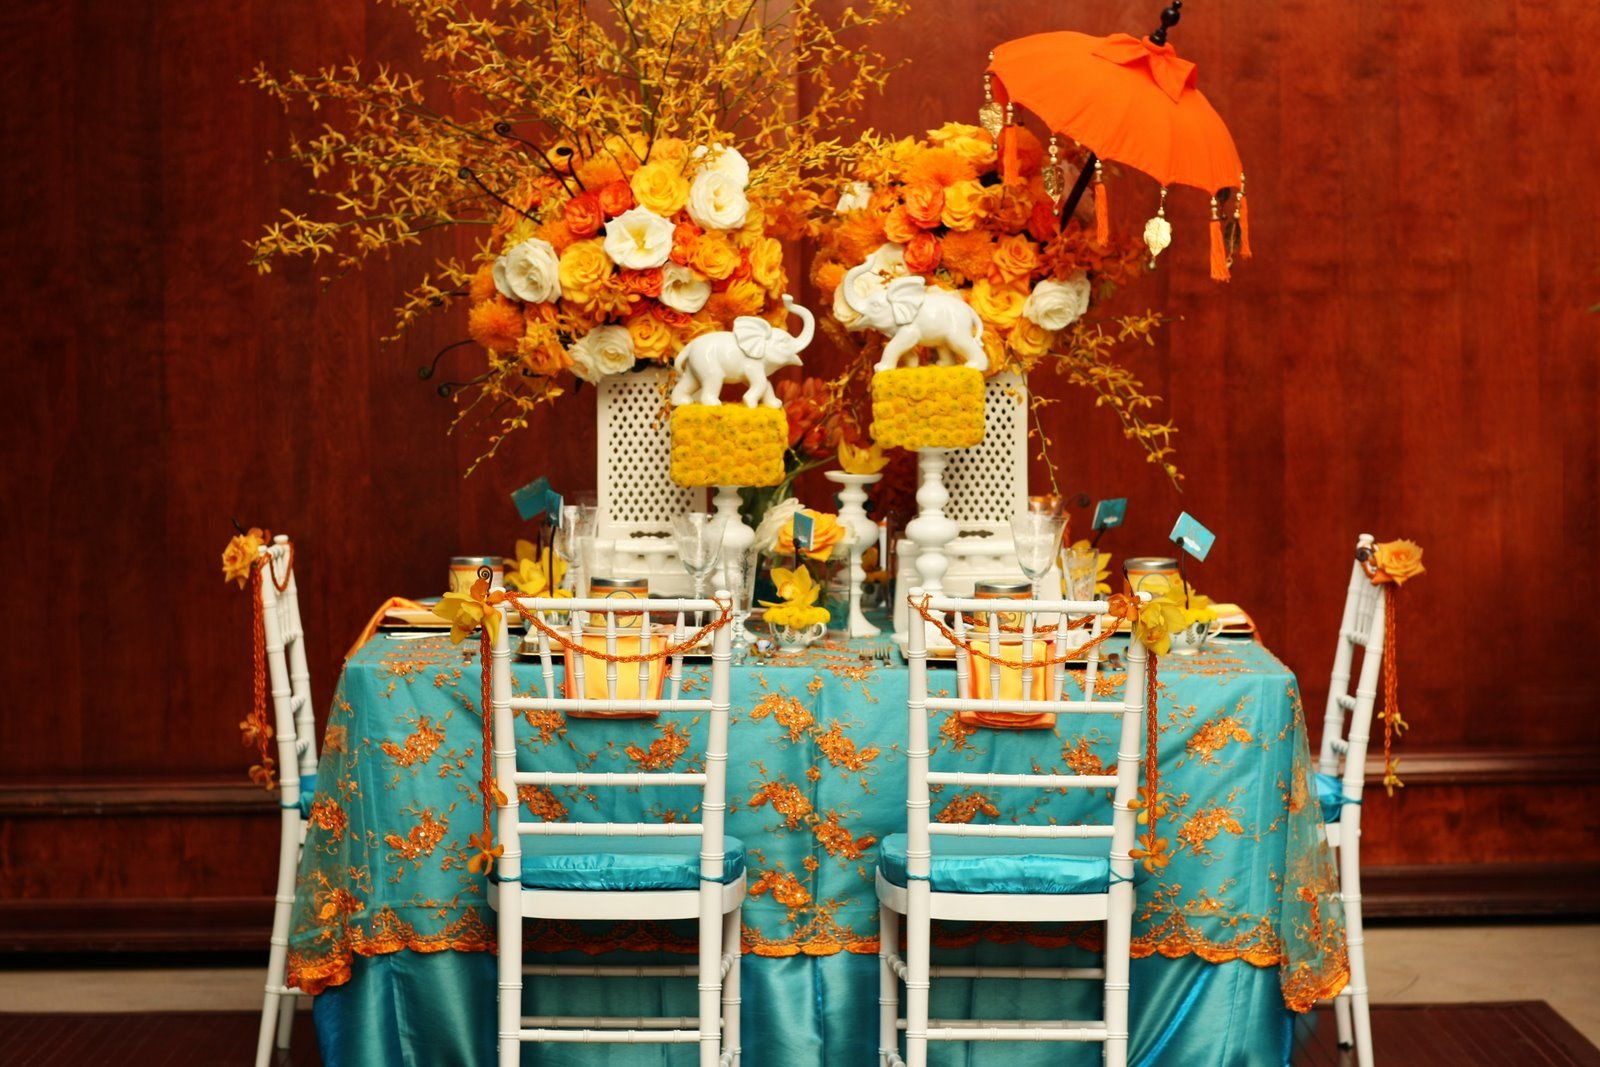 Pin By Jasmine On Indian Decor Party India Wedding Indian Wedding Decorations Indian Wedding Inspiration